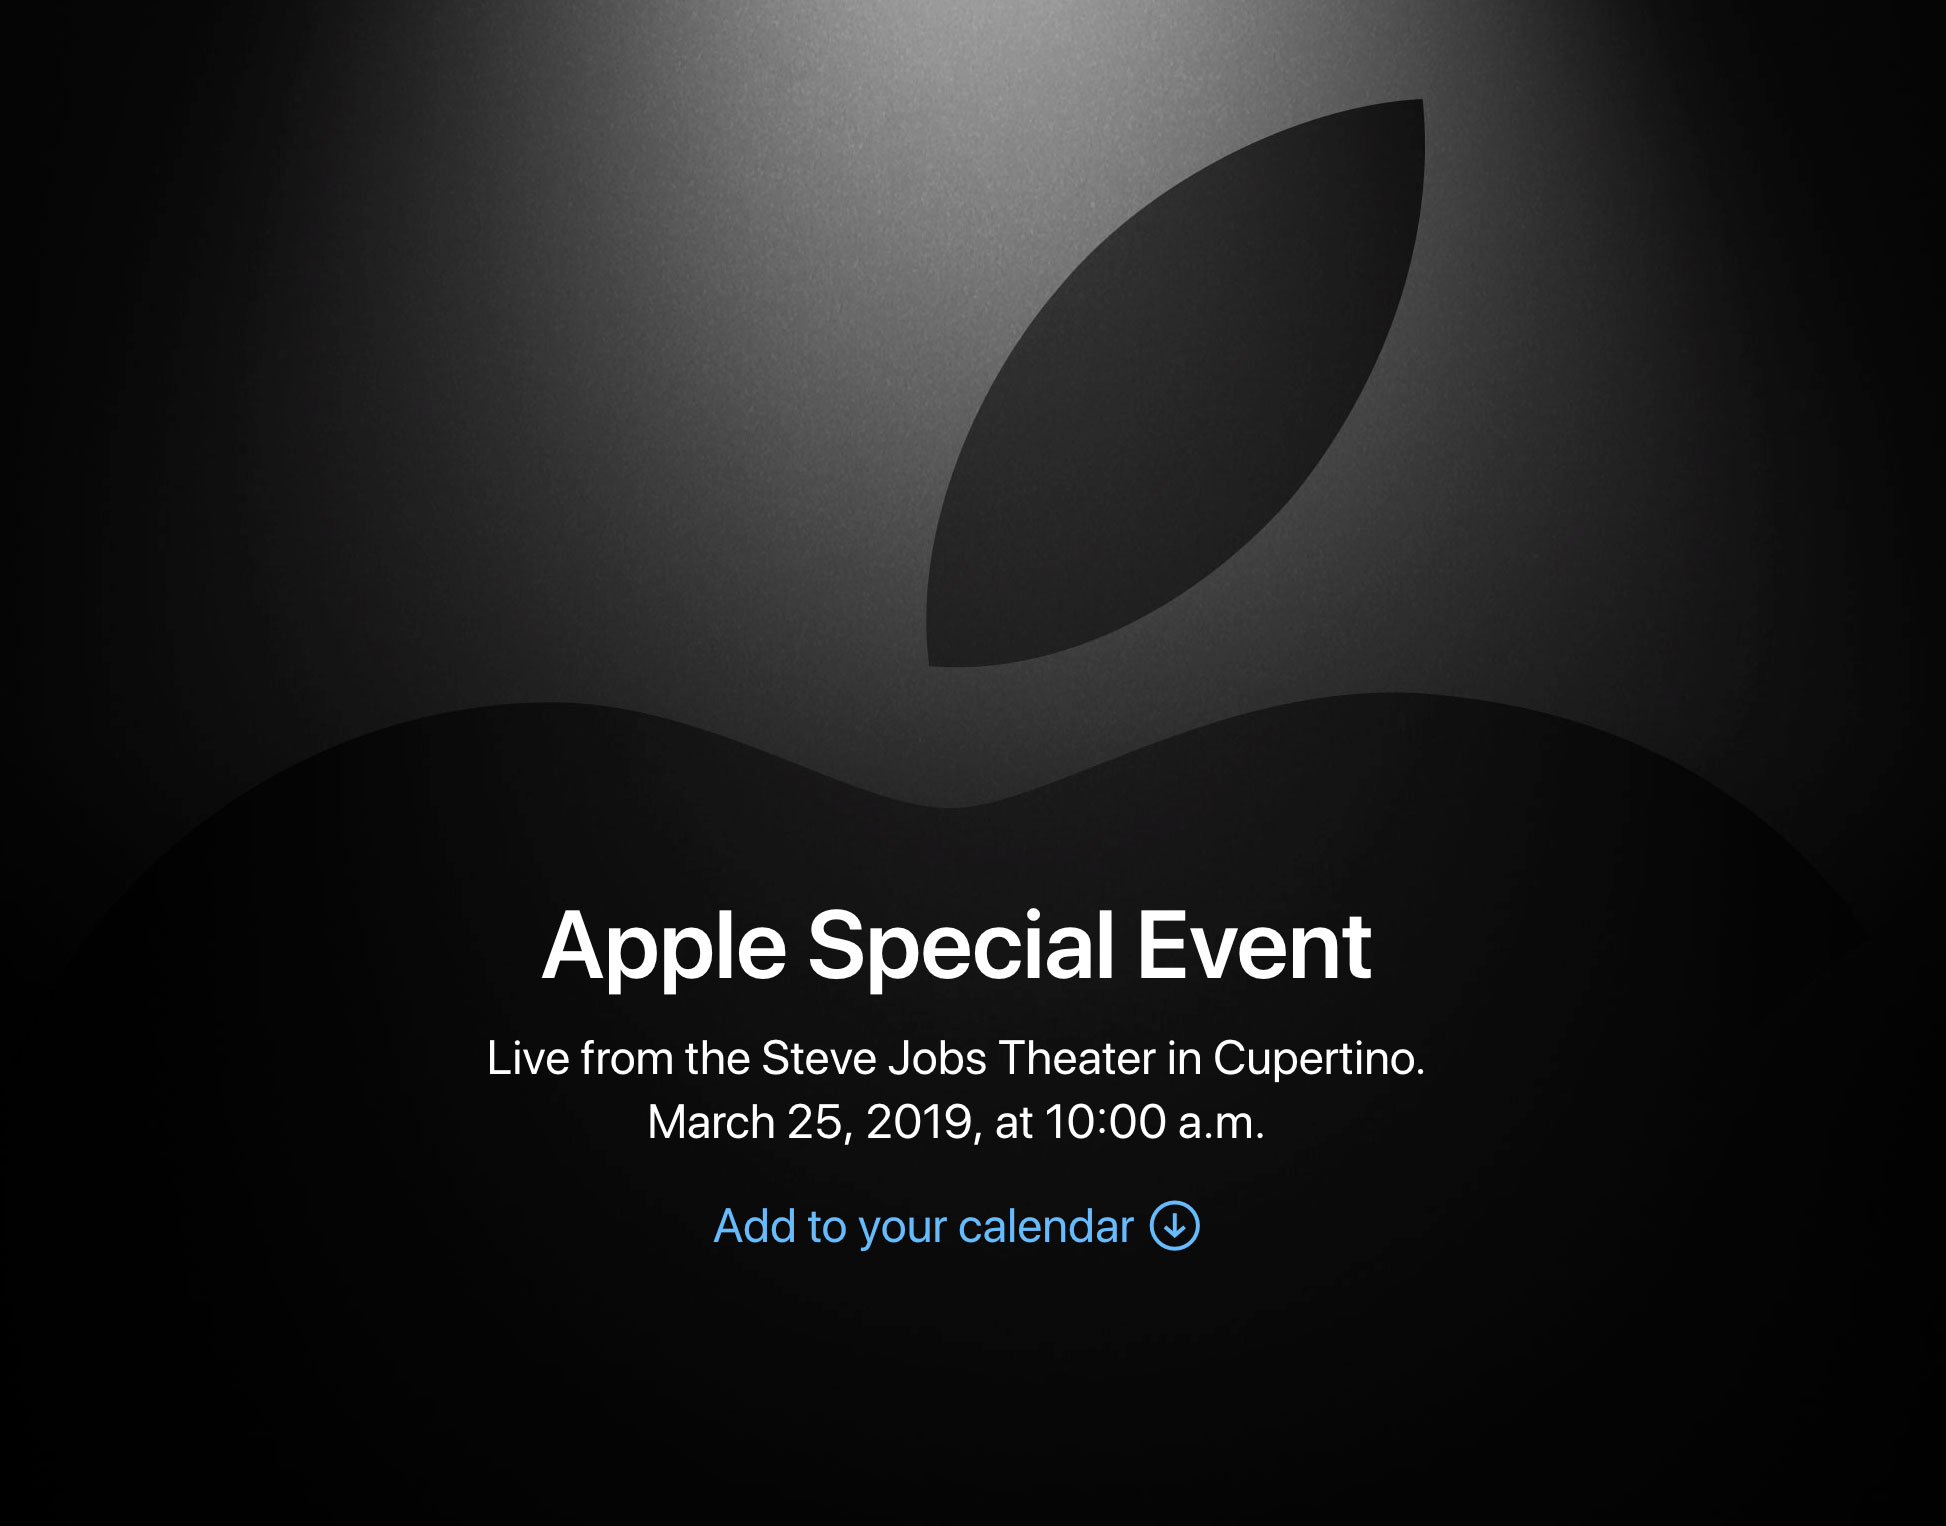 Evento especial de Apple relacionado con el vídeo